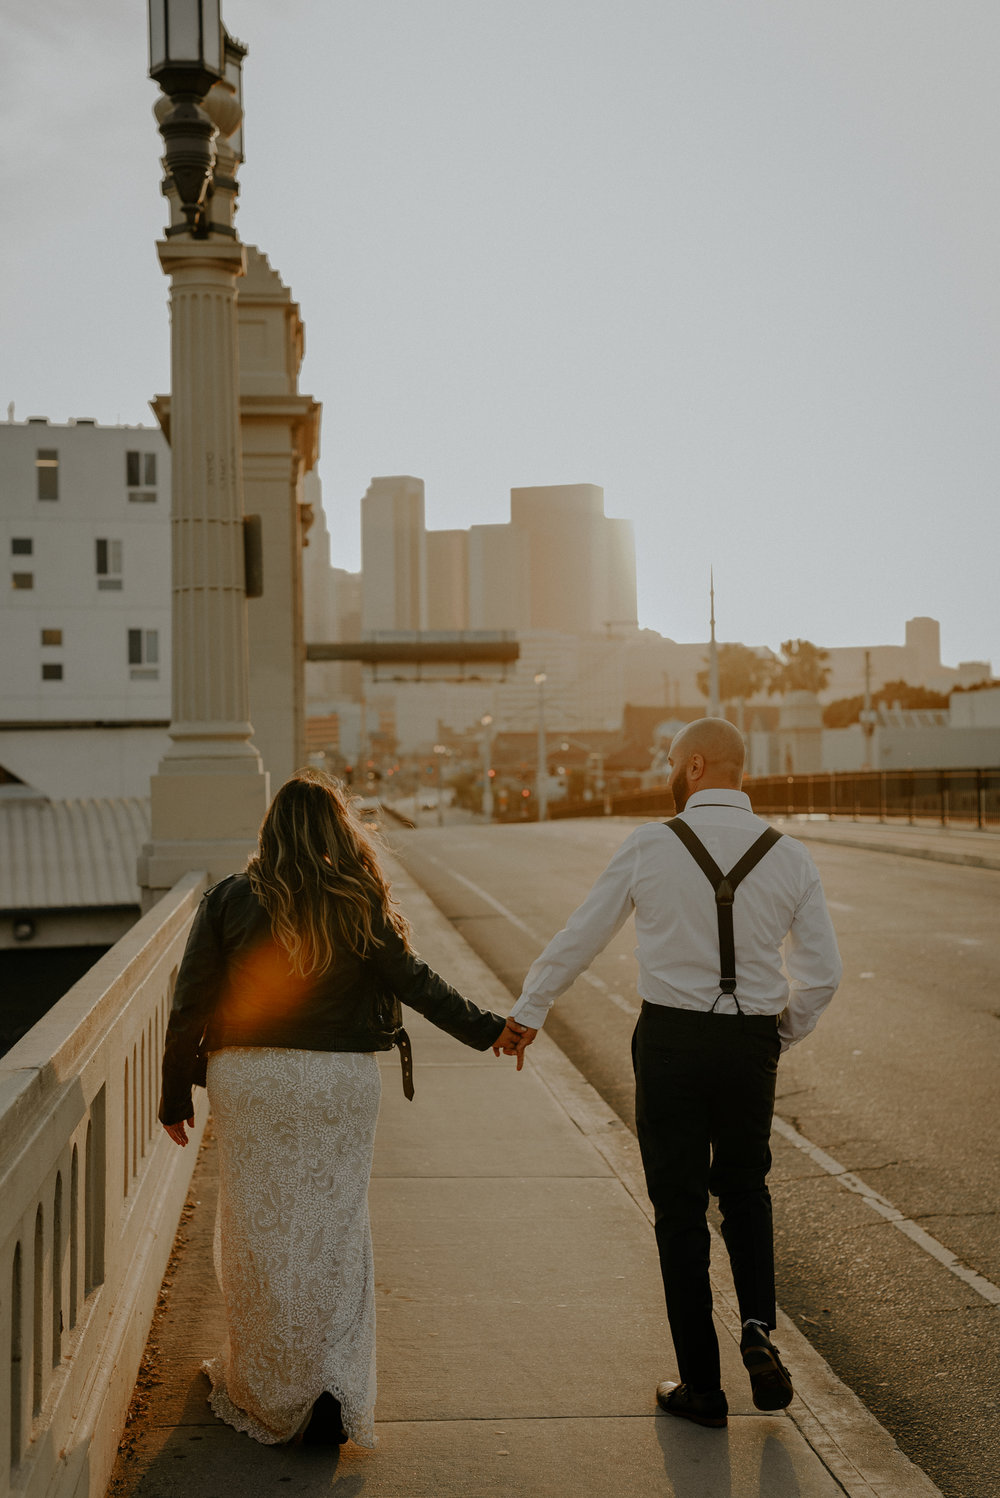 Isaiah + Taylor Photography - Los Angeles Wedding Photographer - DTLA Arts District  Engagement Session  061.jpg